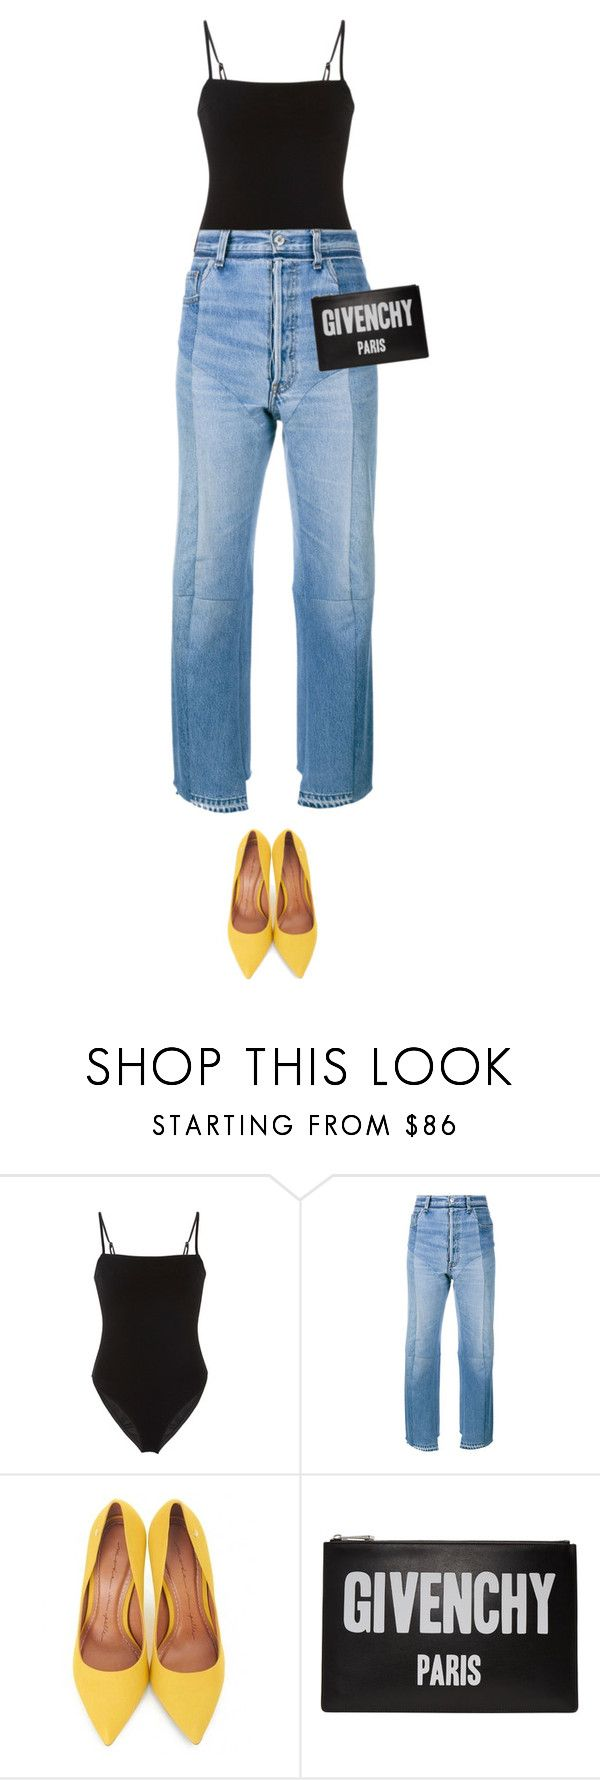 """""""How To Style: Yellow Pumps"""" by kydajenner ❤ liked on Polyvore featuring Fleur du Mal, Vetements, Moda In Pelle, Givenchy, StreetStyle, edgy and pump"""